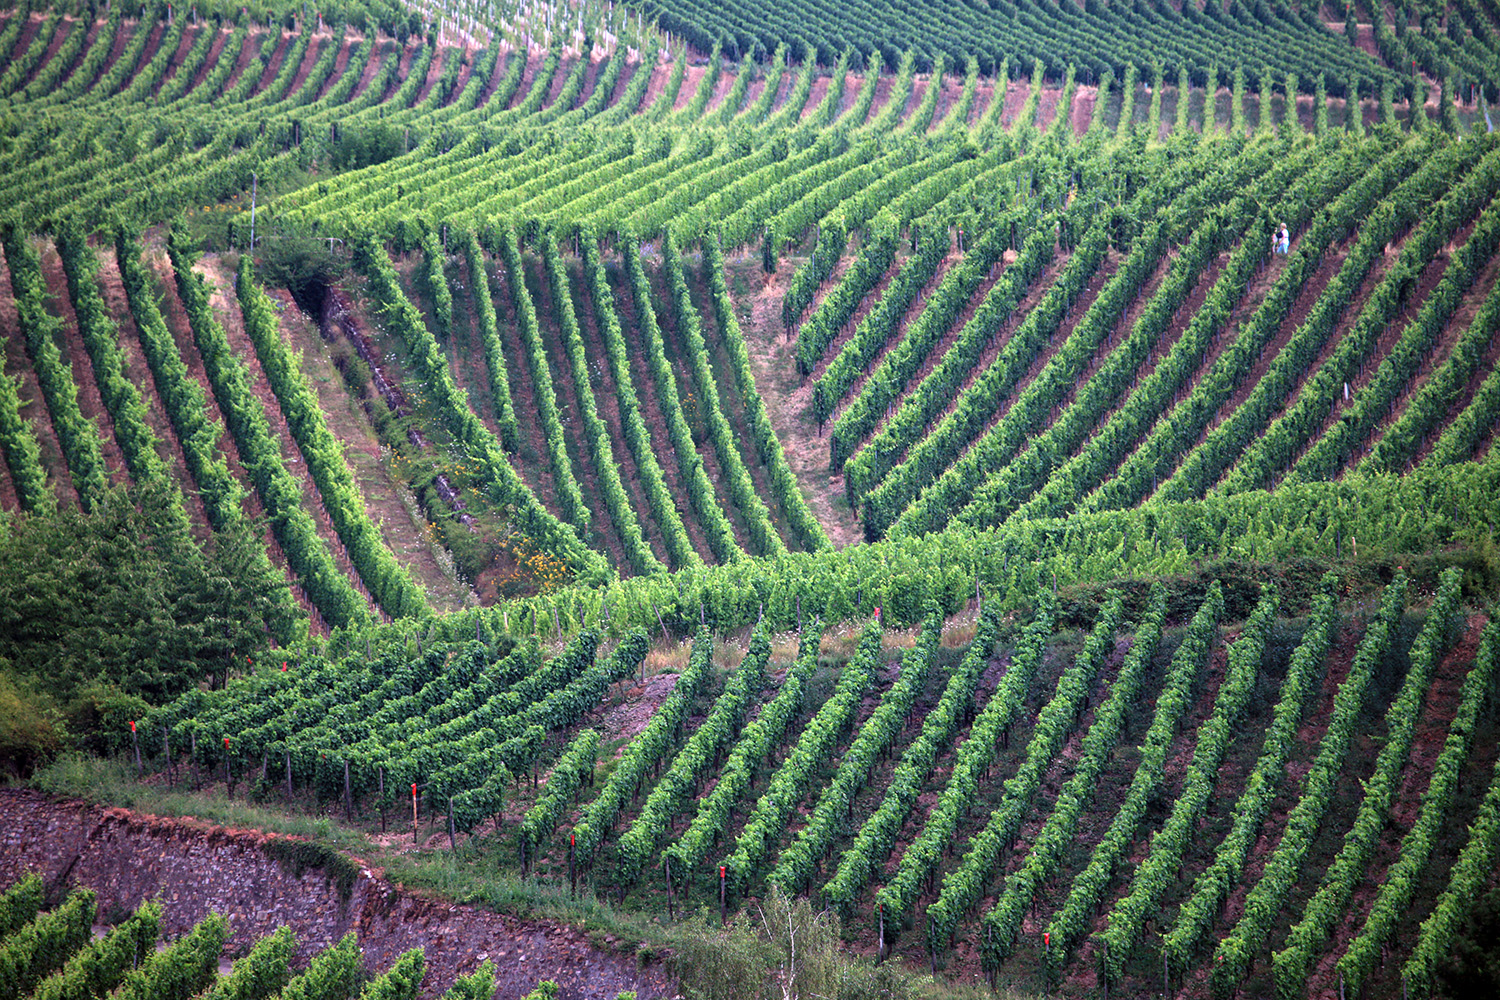 Patterns of the Vines